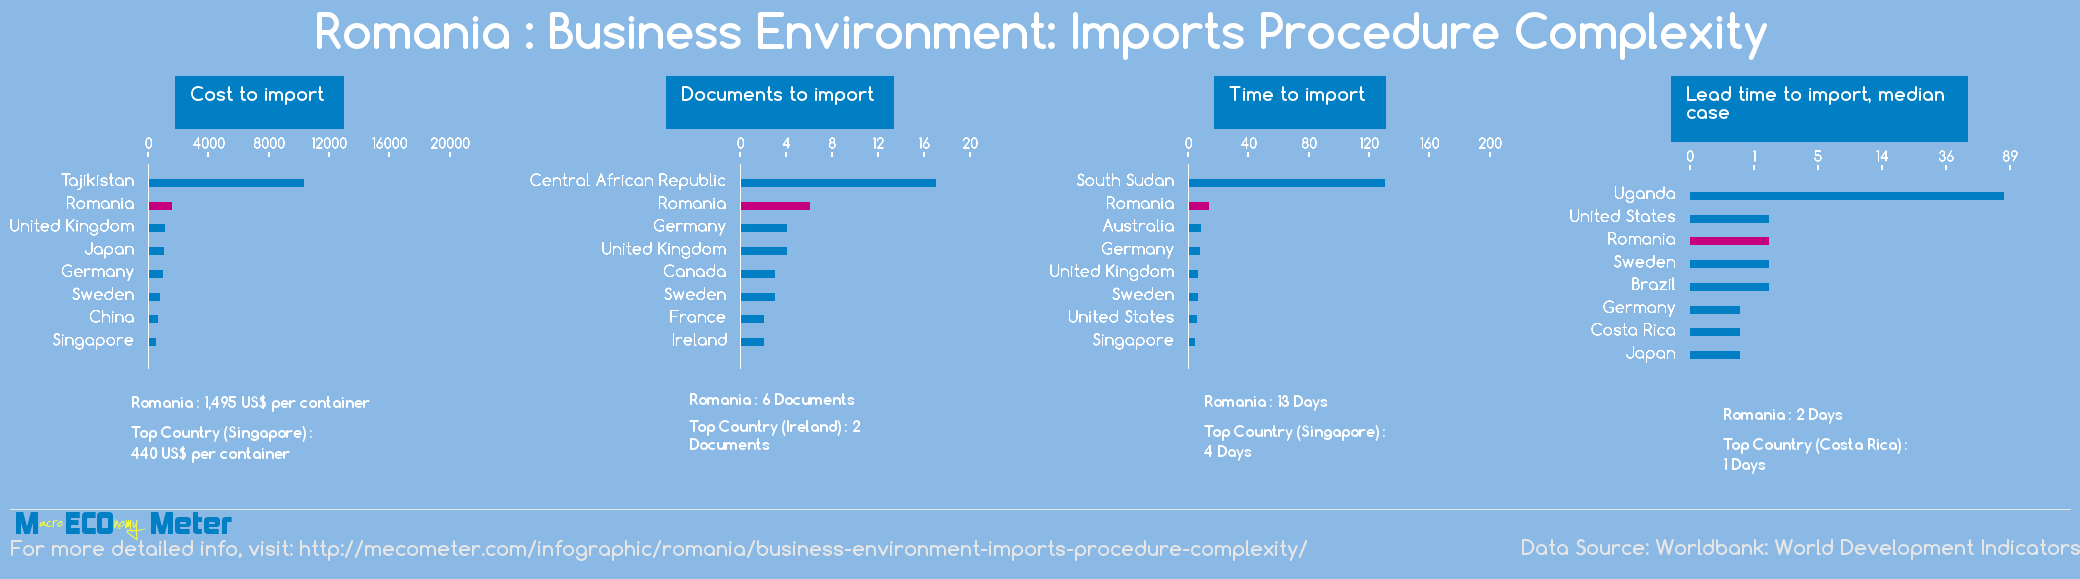 Romania : Business Environment: Imports Procedure Complexity